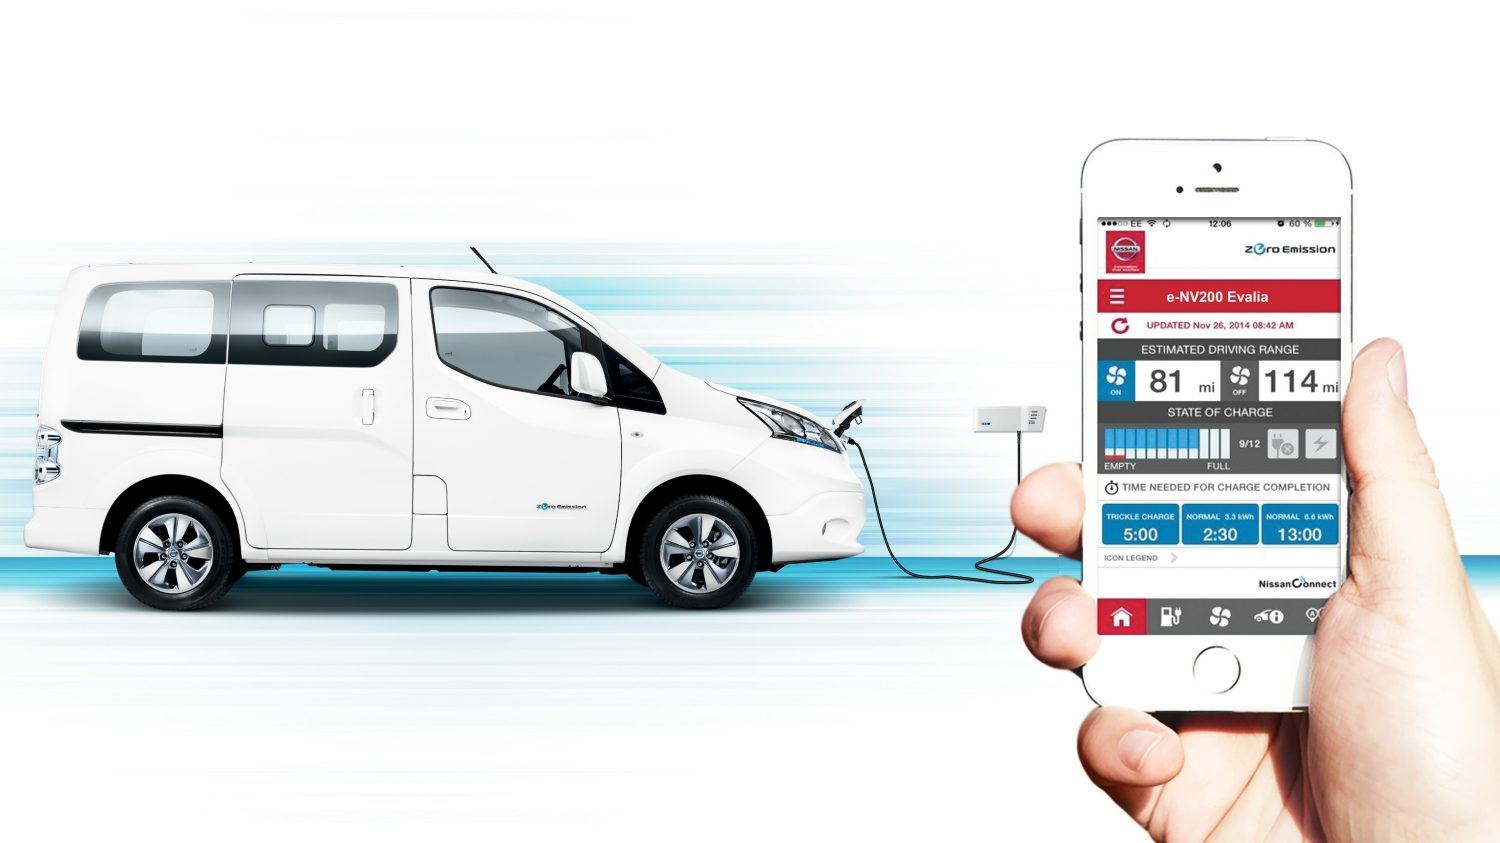 Nissan e-NV200 | Combi | Electric vehicle being charged